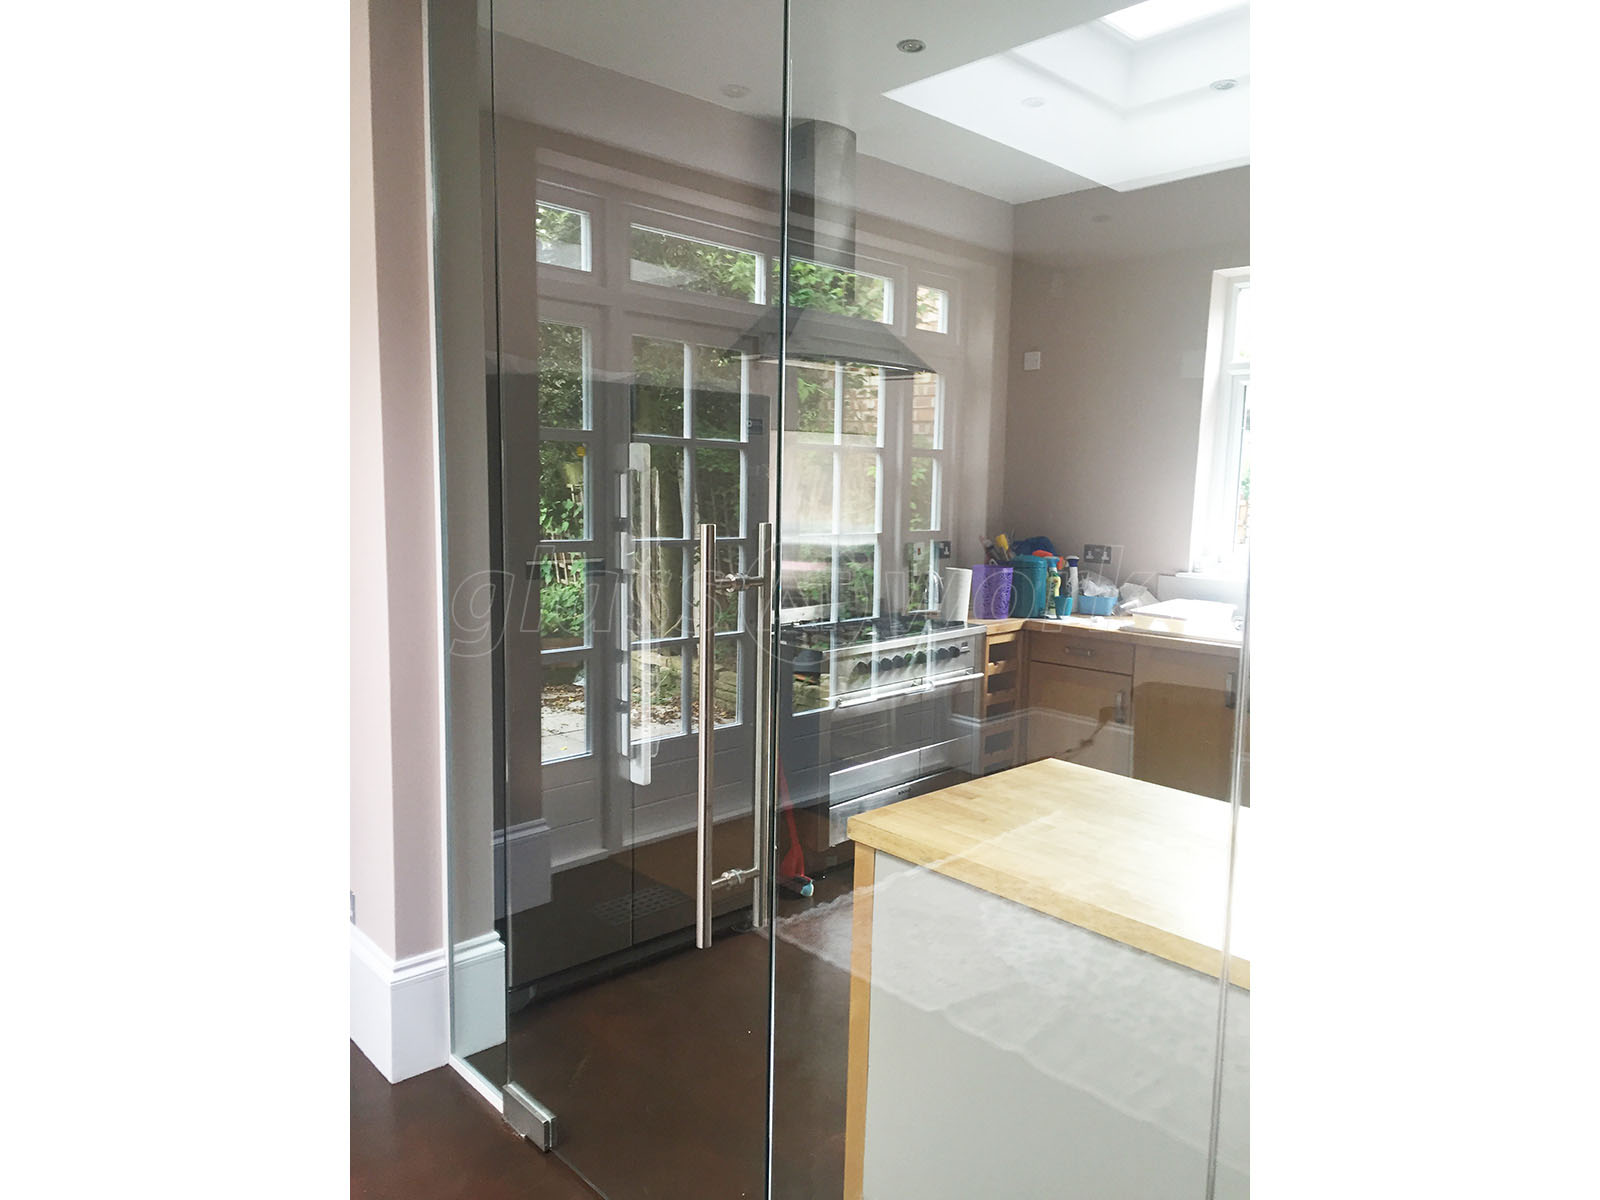 Partition Walls With Doors : Glass partitioning at domestic property mapesbury london